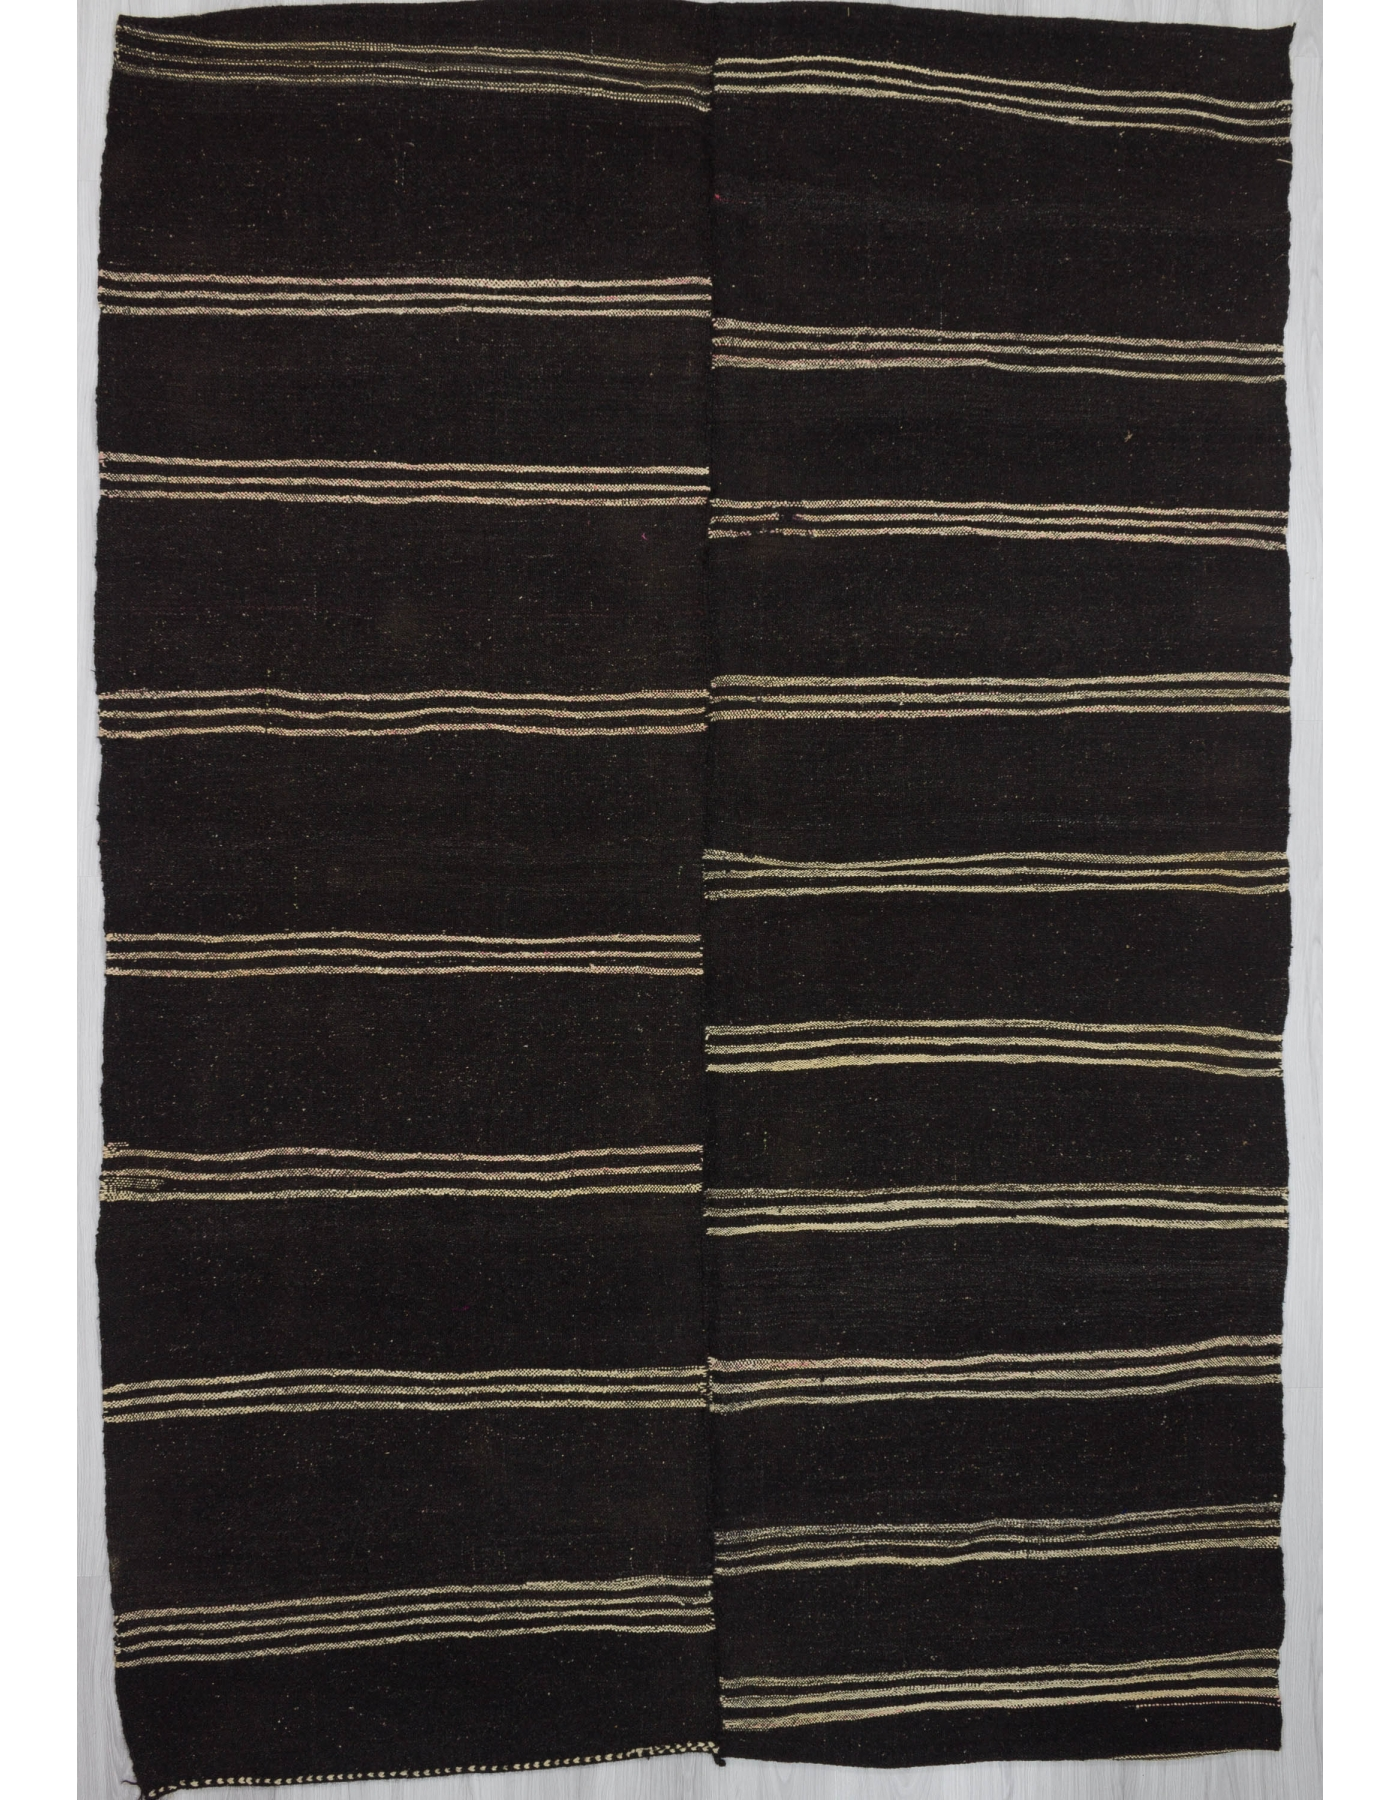 Vintage black white striped kilim rug